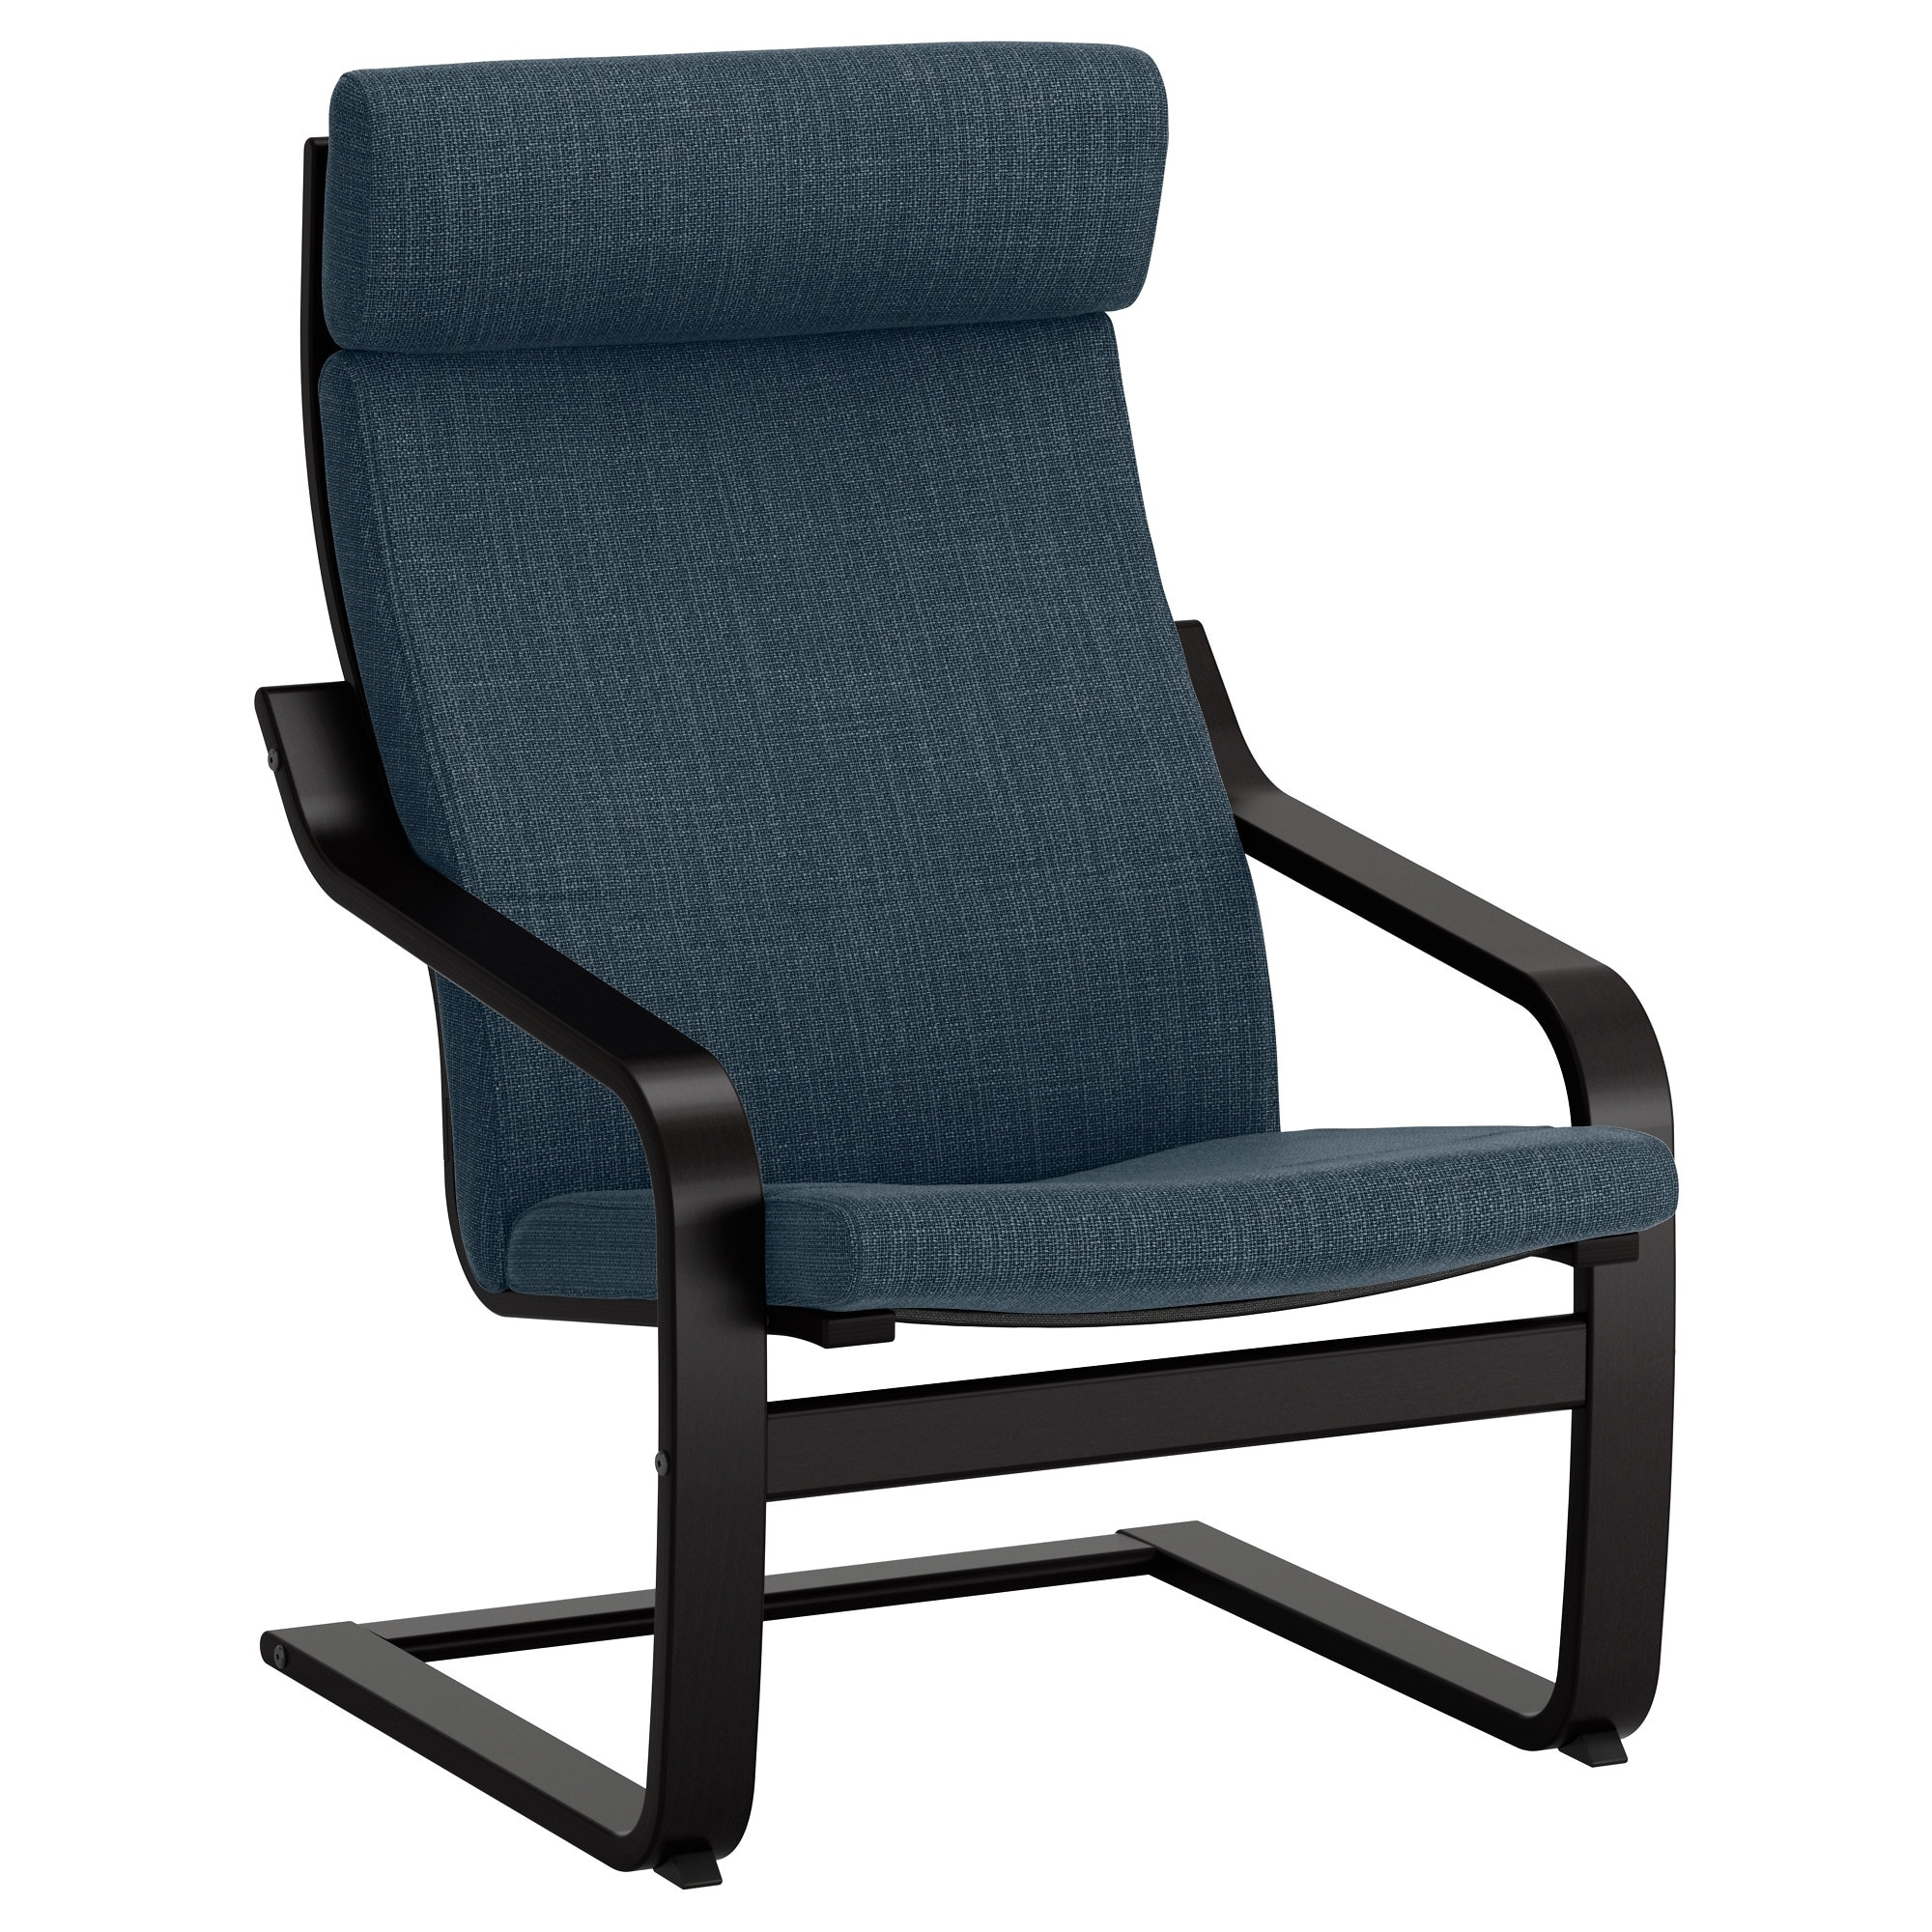 Ikea Rocking Chairs Throughout Widely Used Poäng Armchair – Hillared Anthracite – Ikea (View 11 of 20)